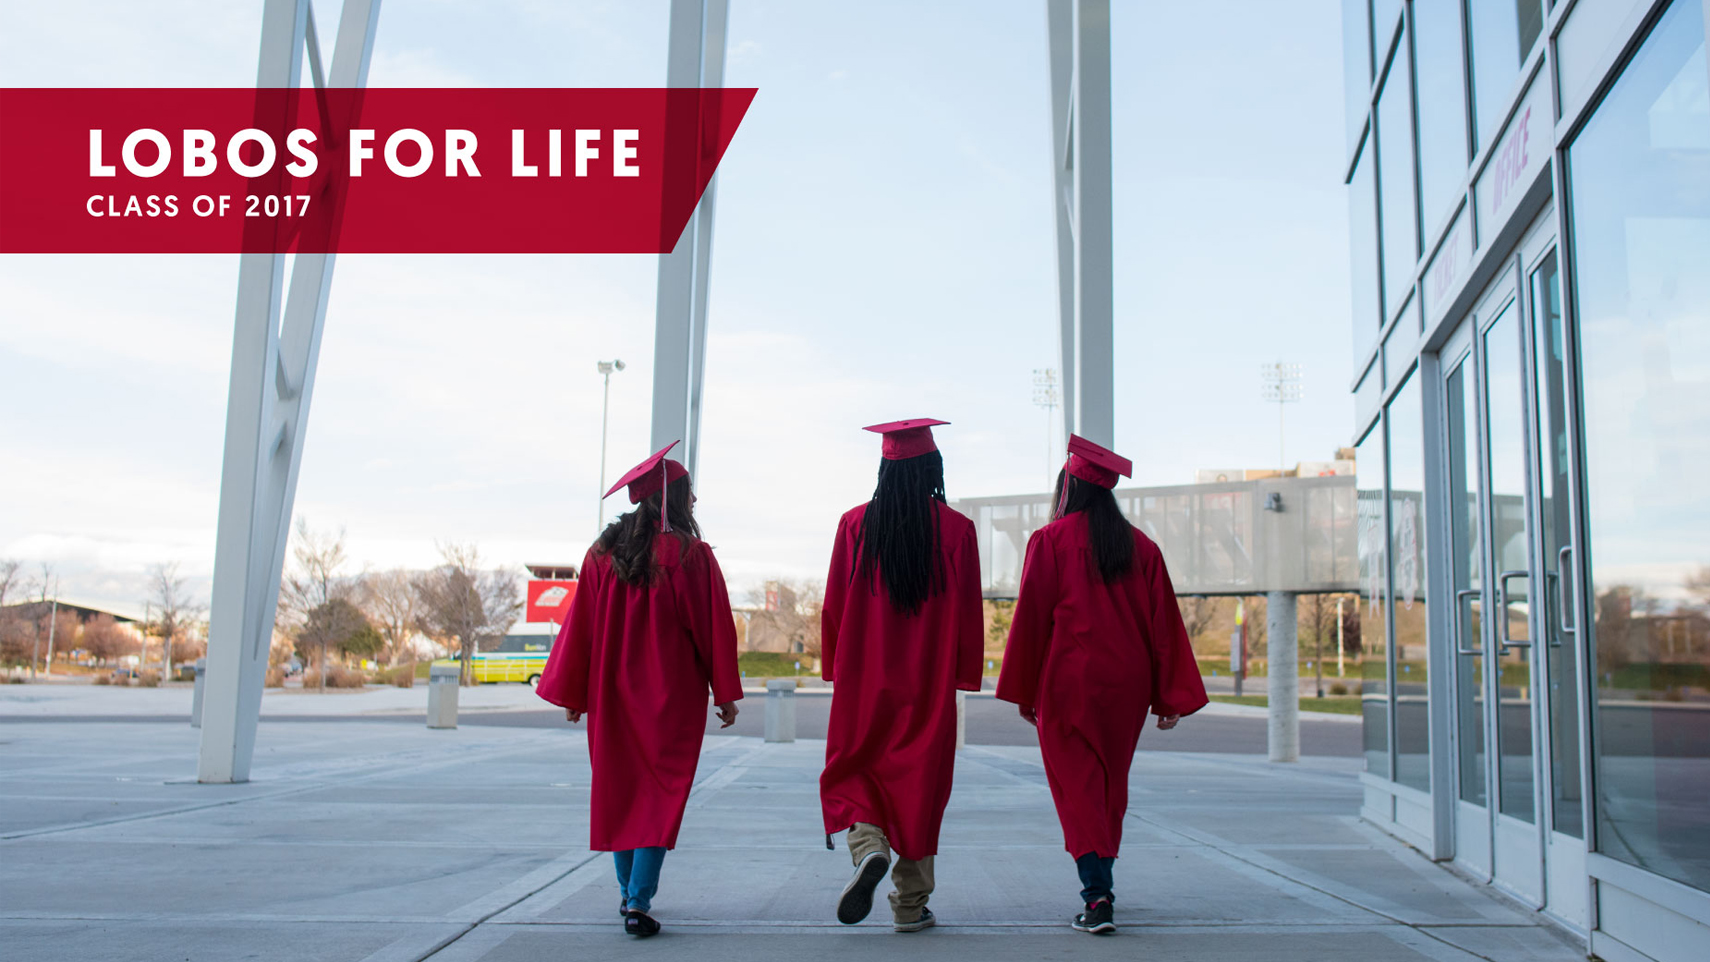 Lobos for Life – Class of 2017